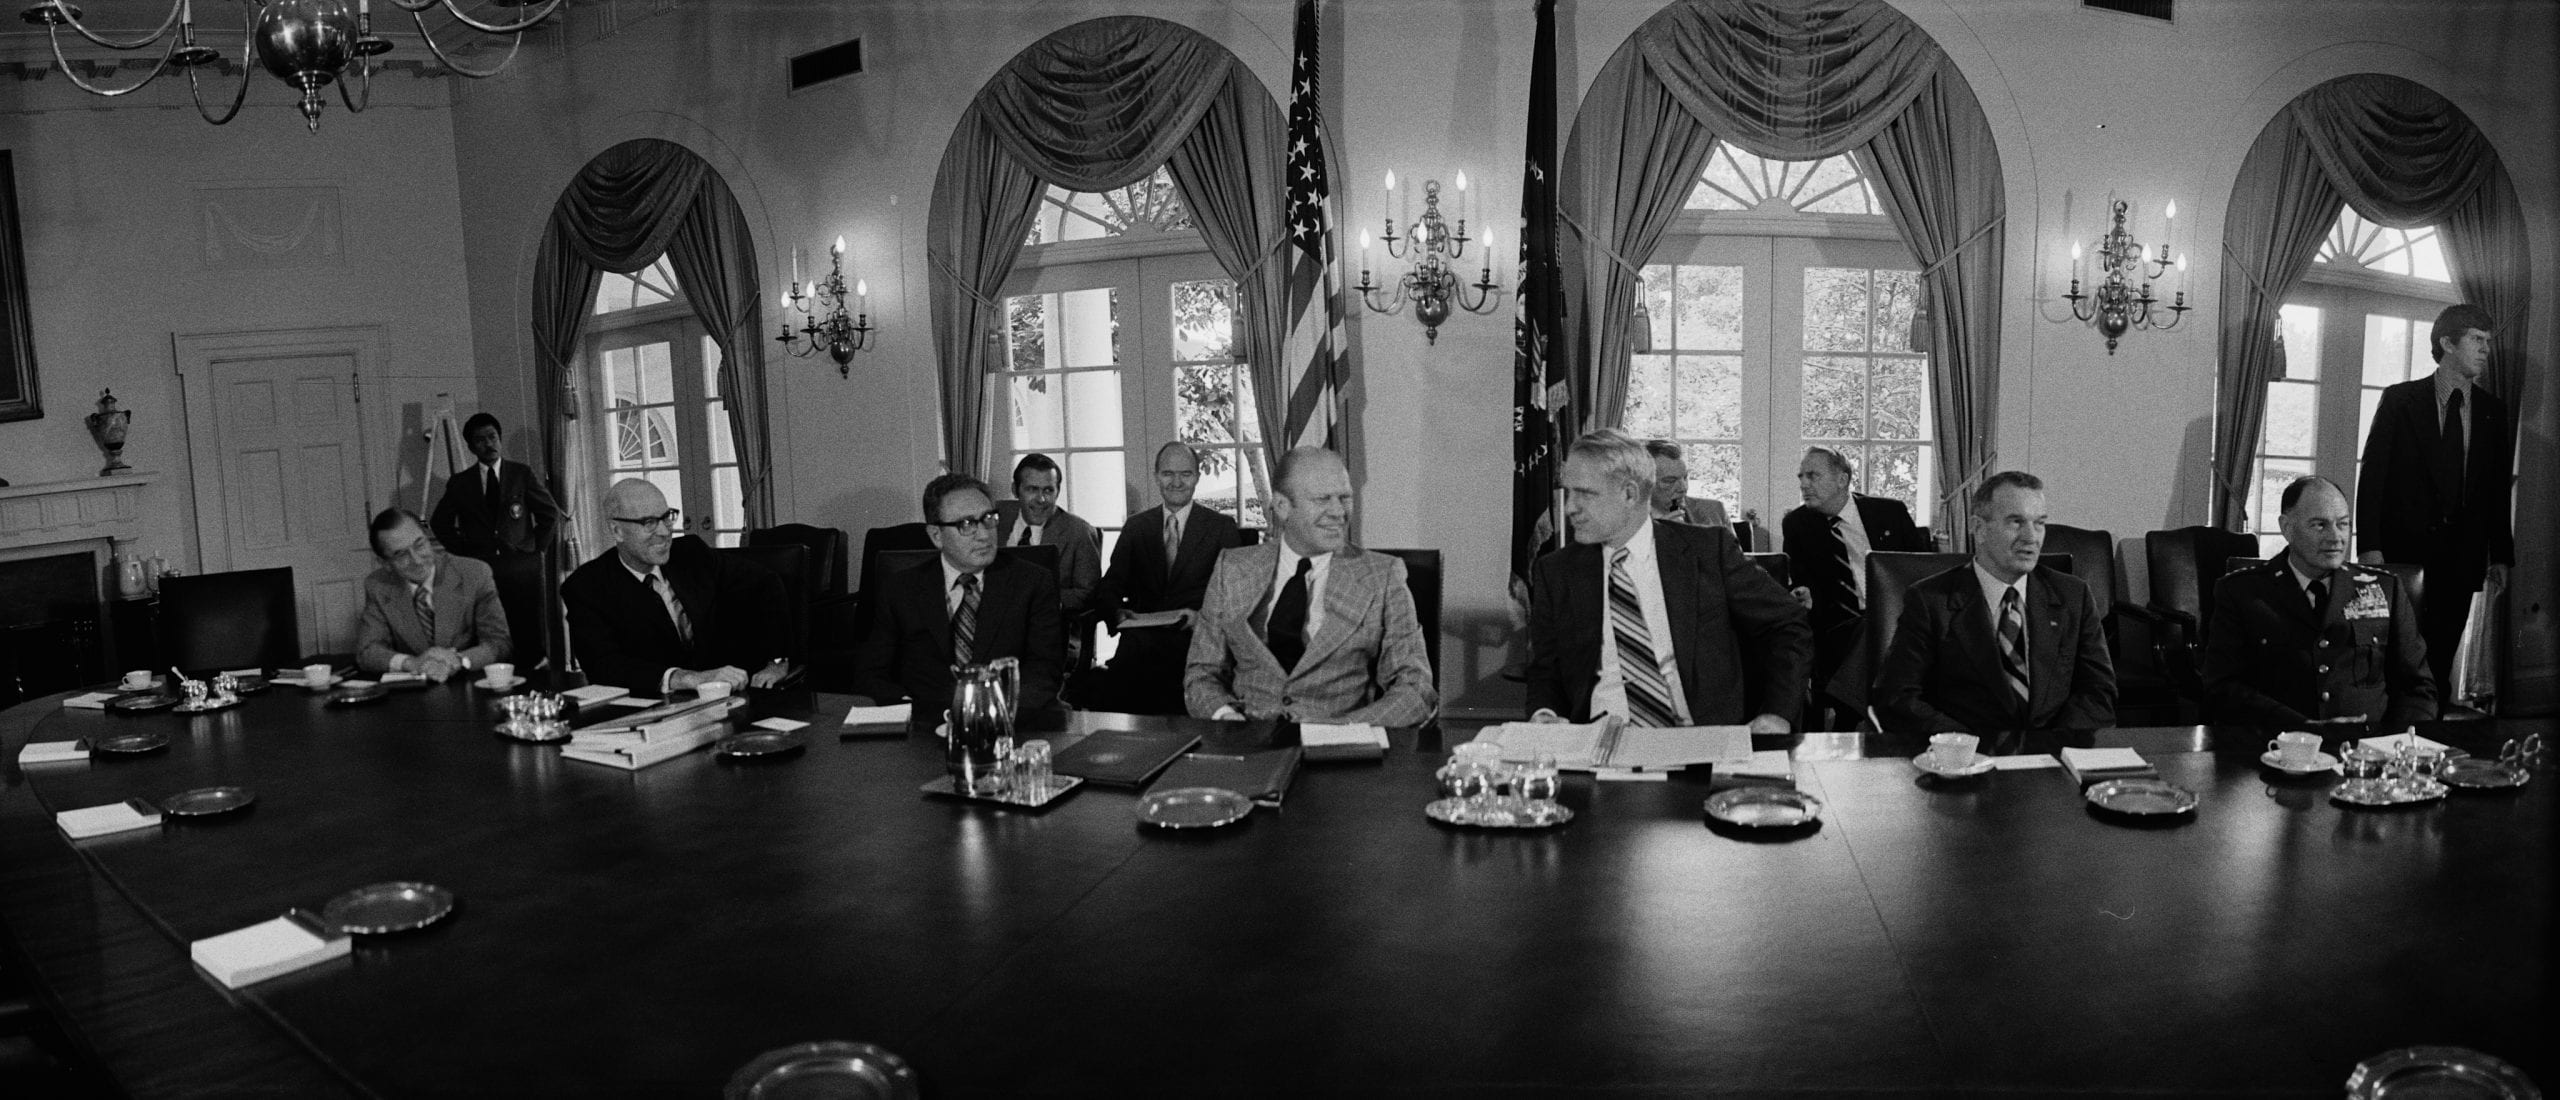 Photographic negative showing President Ford seated at a table with William E. Colby, Director of CIA; Robert S. Ingersoll, Deputy Secretary of State; Henry Kissinger, Secretary of State; James R. Schlesinger, Secretary of Defense; William P. Clements, Jr., Deputy Secretary of Defense; George S. Brown, Chairman of Joint Chiefs.